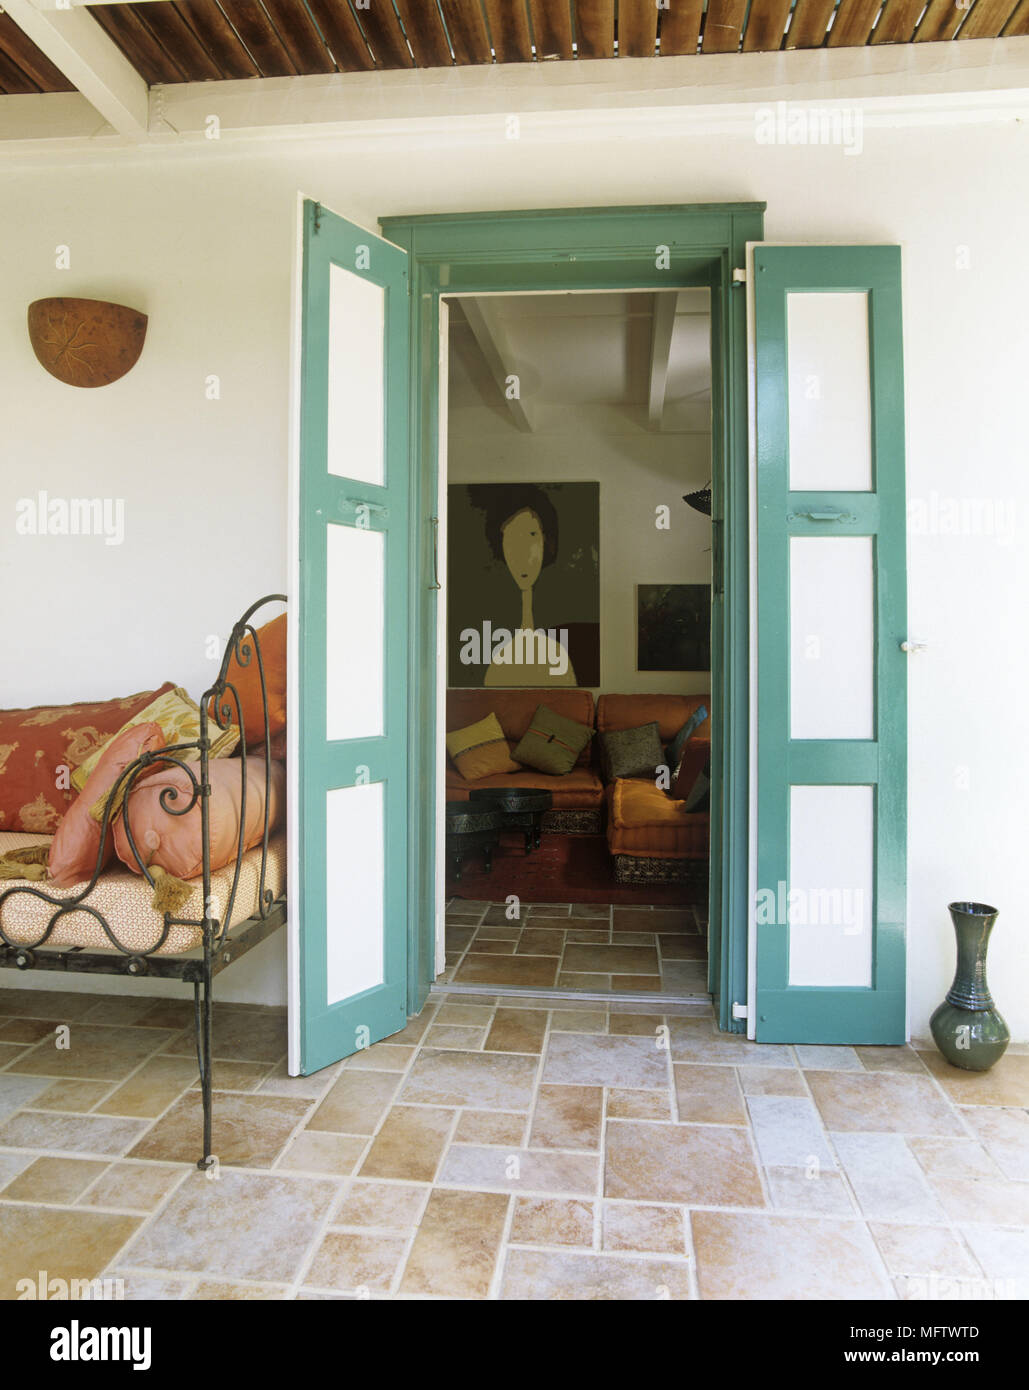 Details Of The Traditional Front Porch With Stone Floor View Through